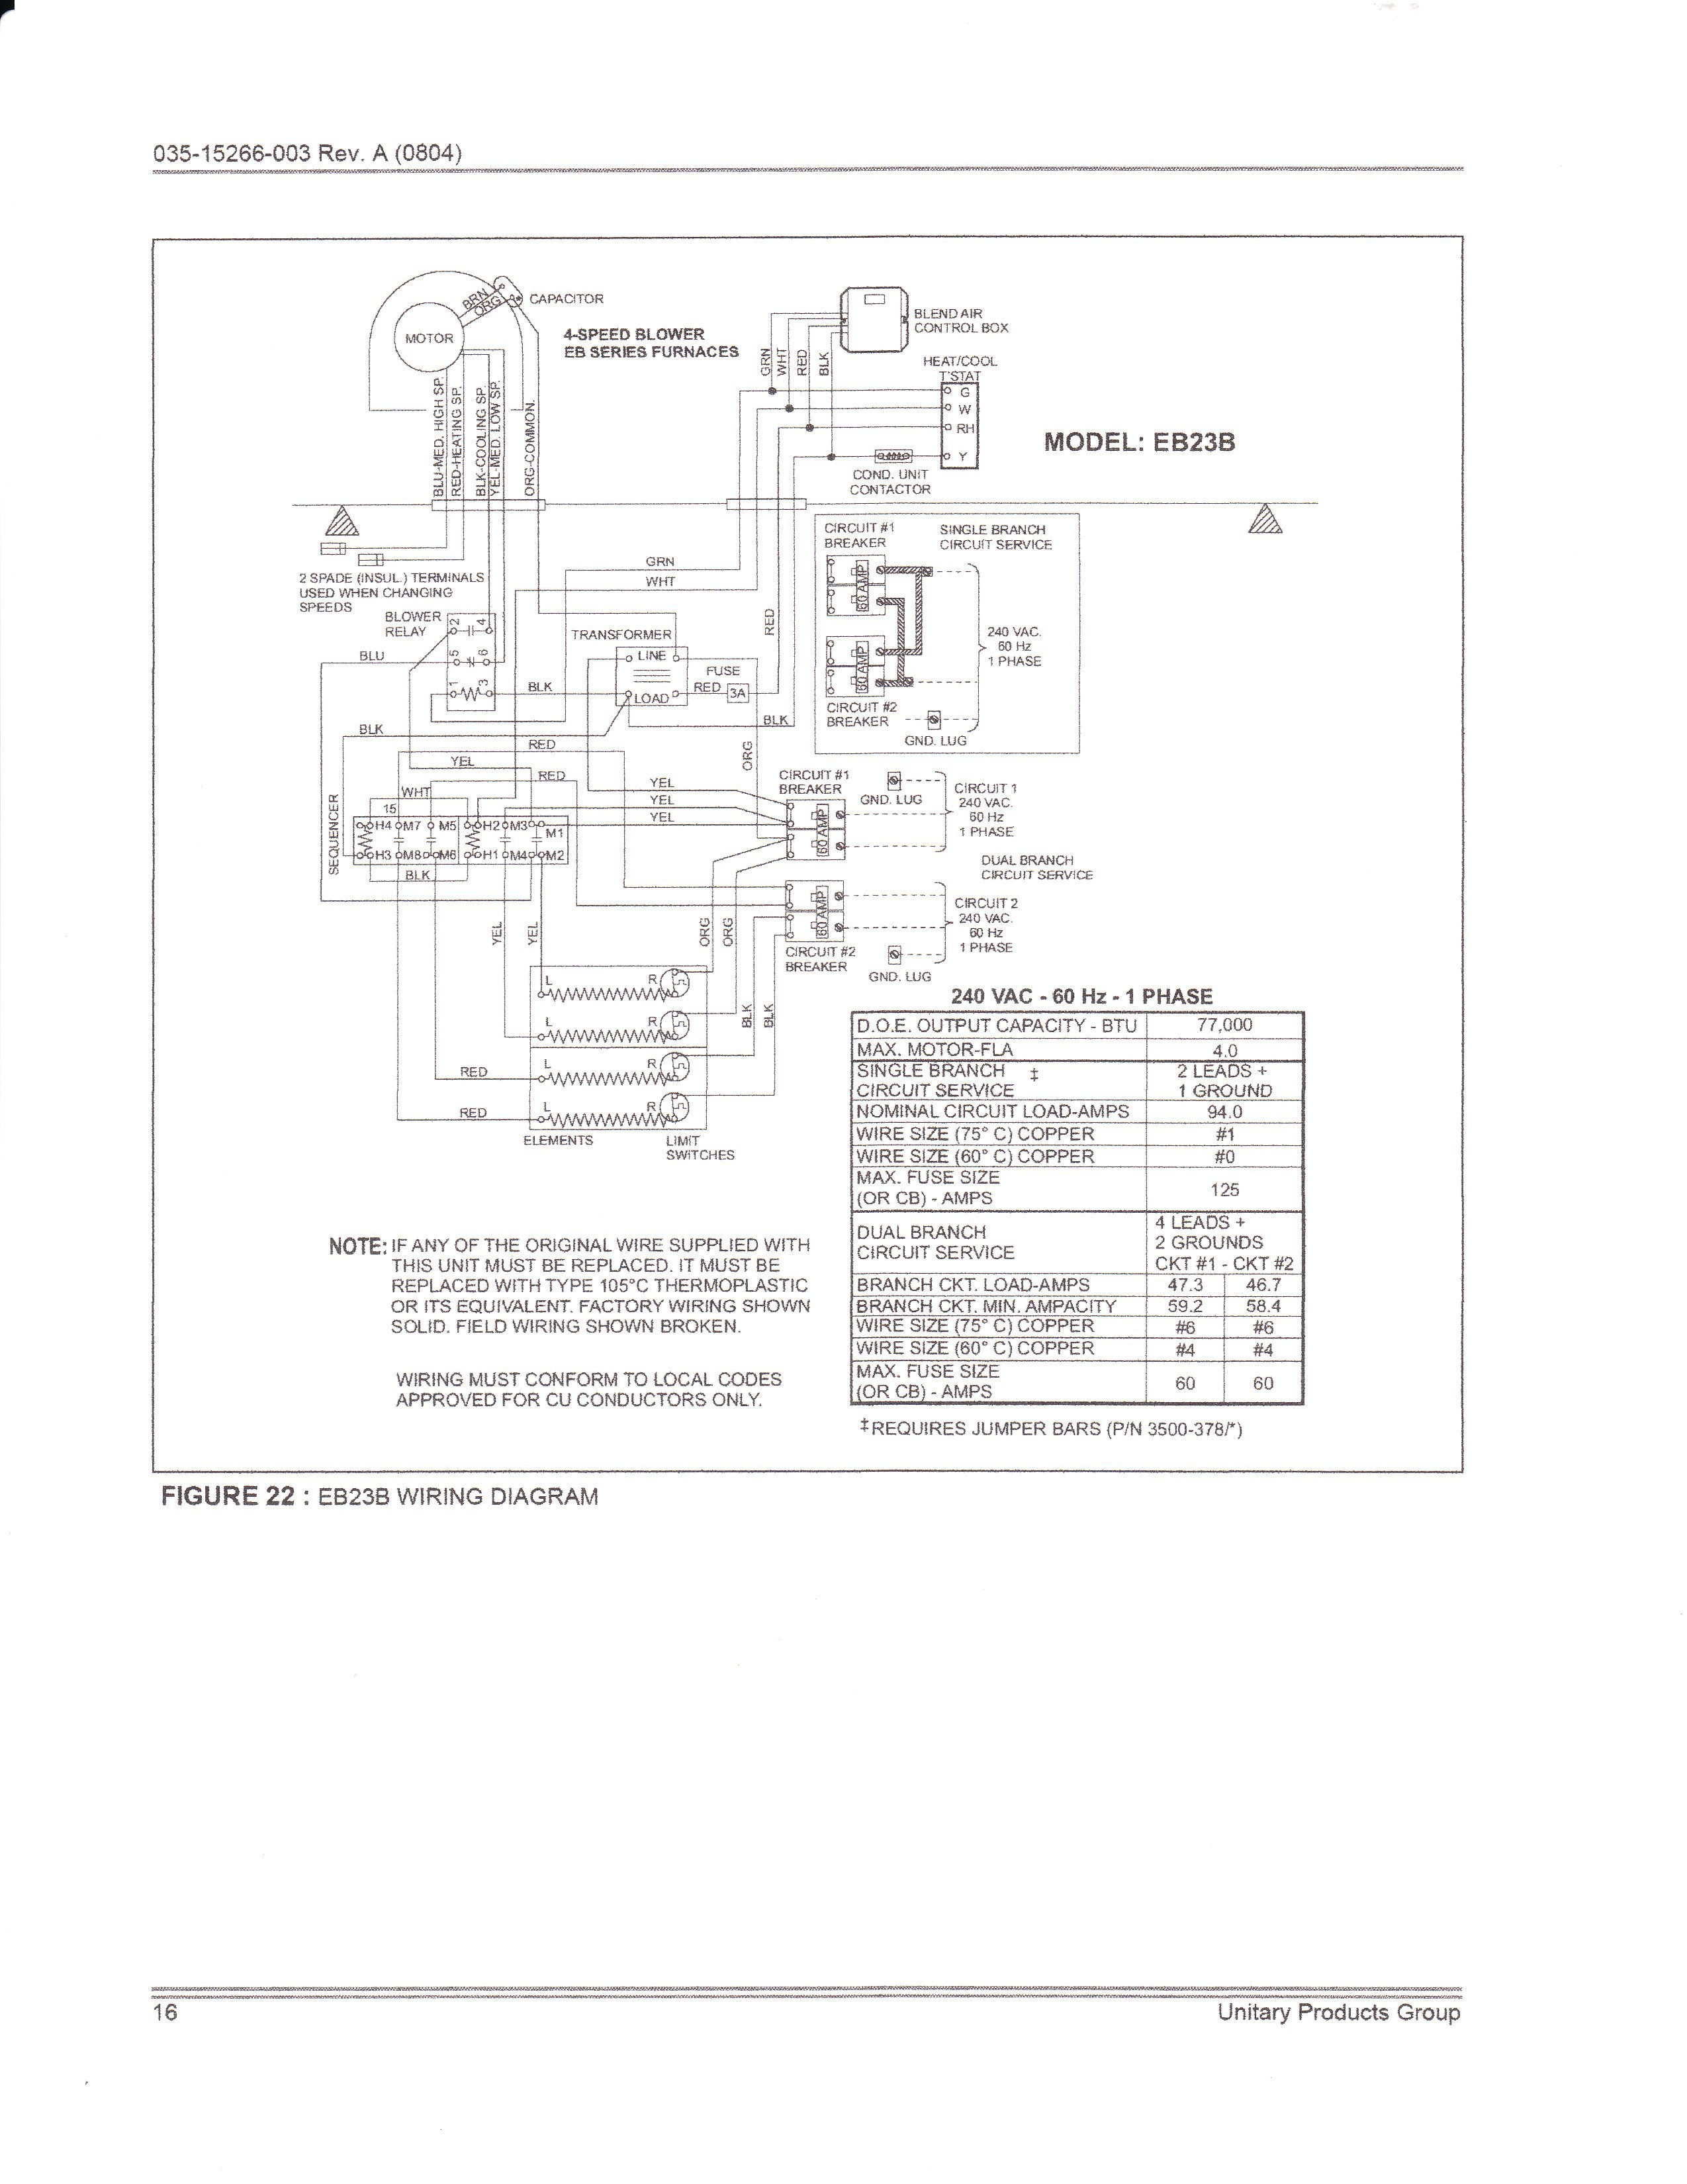 Electric Furnace Sequencer Wiring Diagram Free Download - Painless Wiring  Fuse Block Diagram | Bege Wiring DiagramBege Wiring Diagram